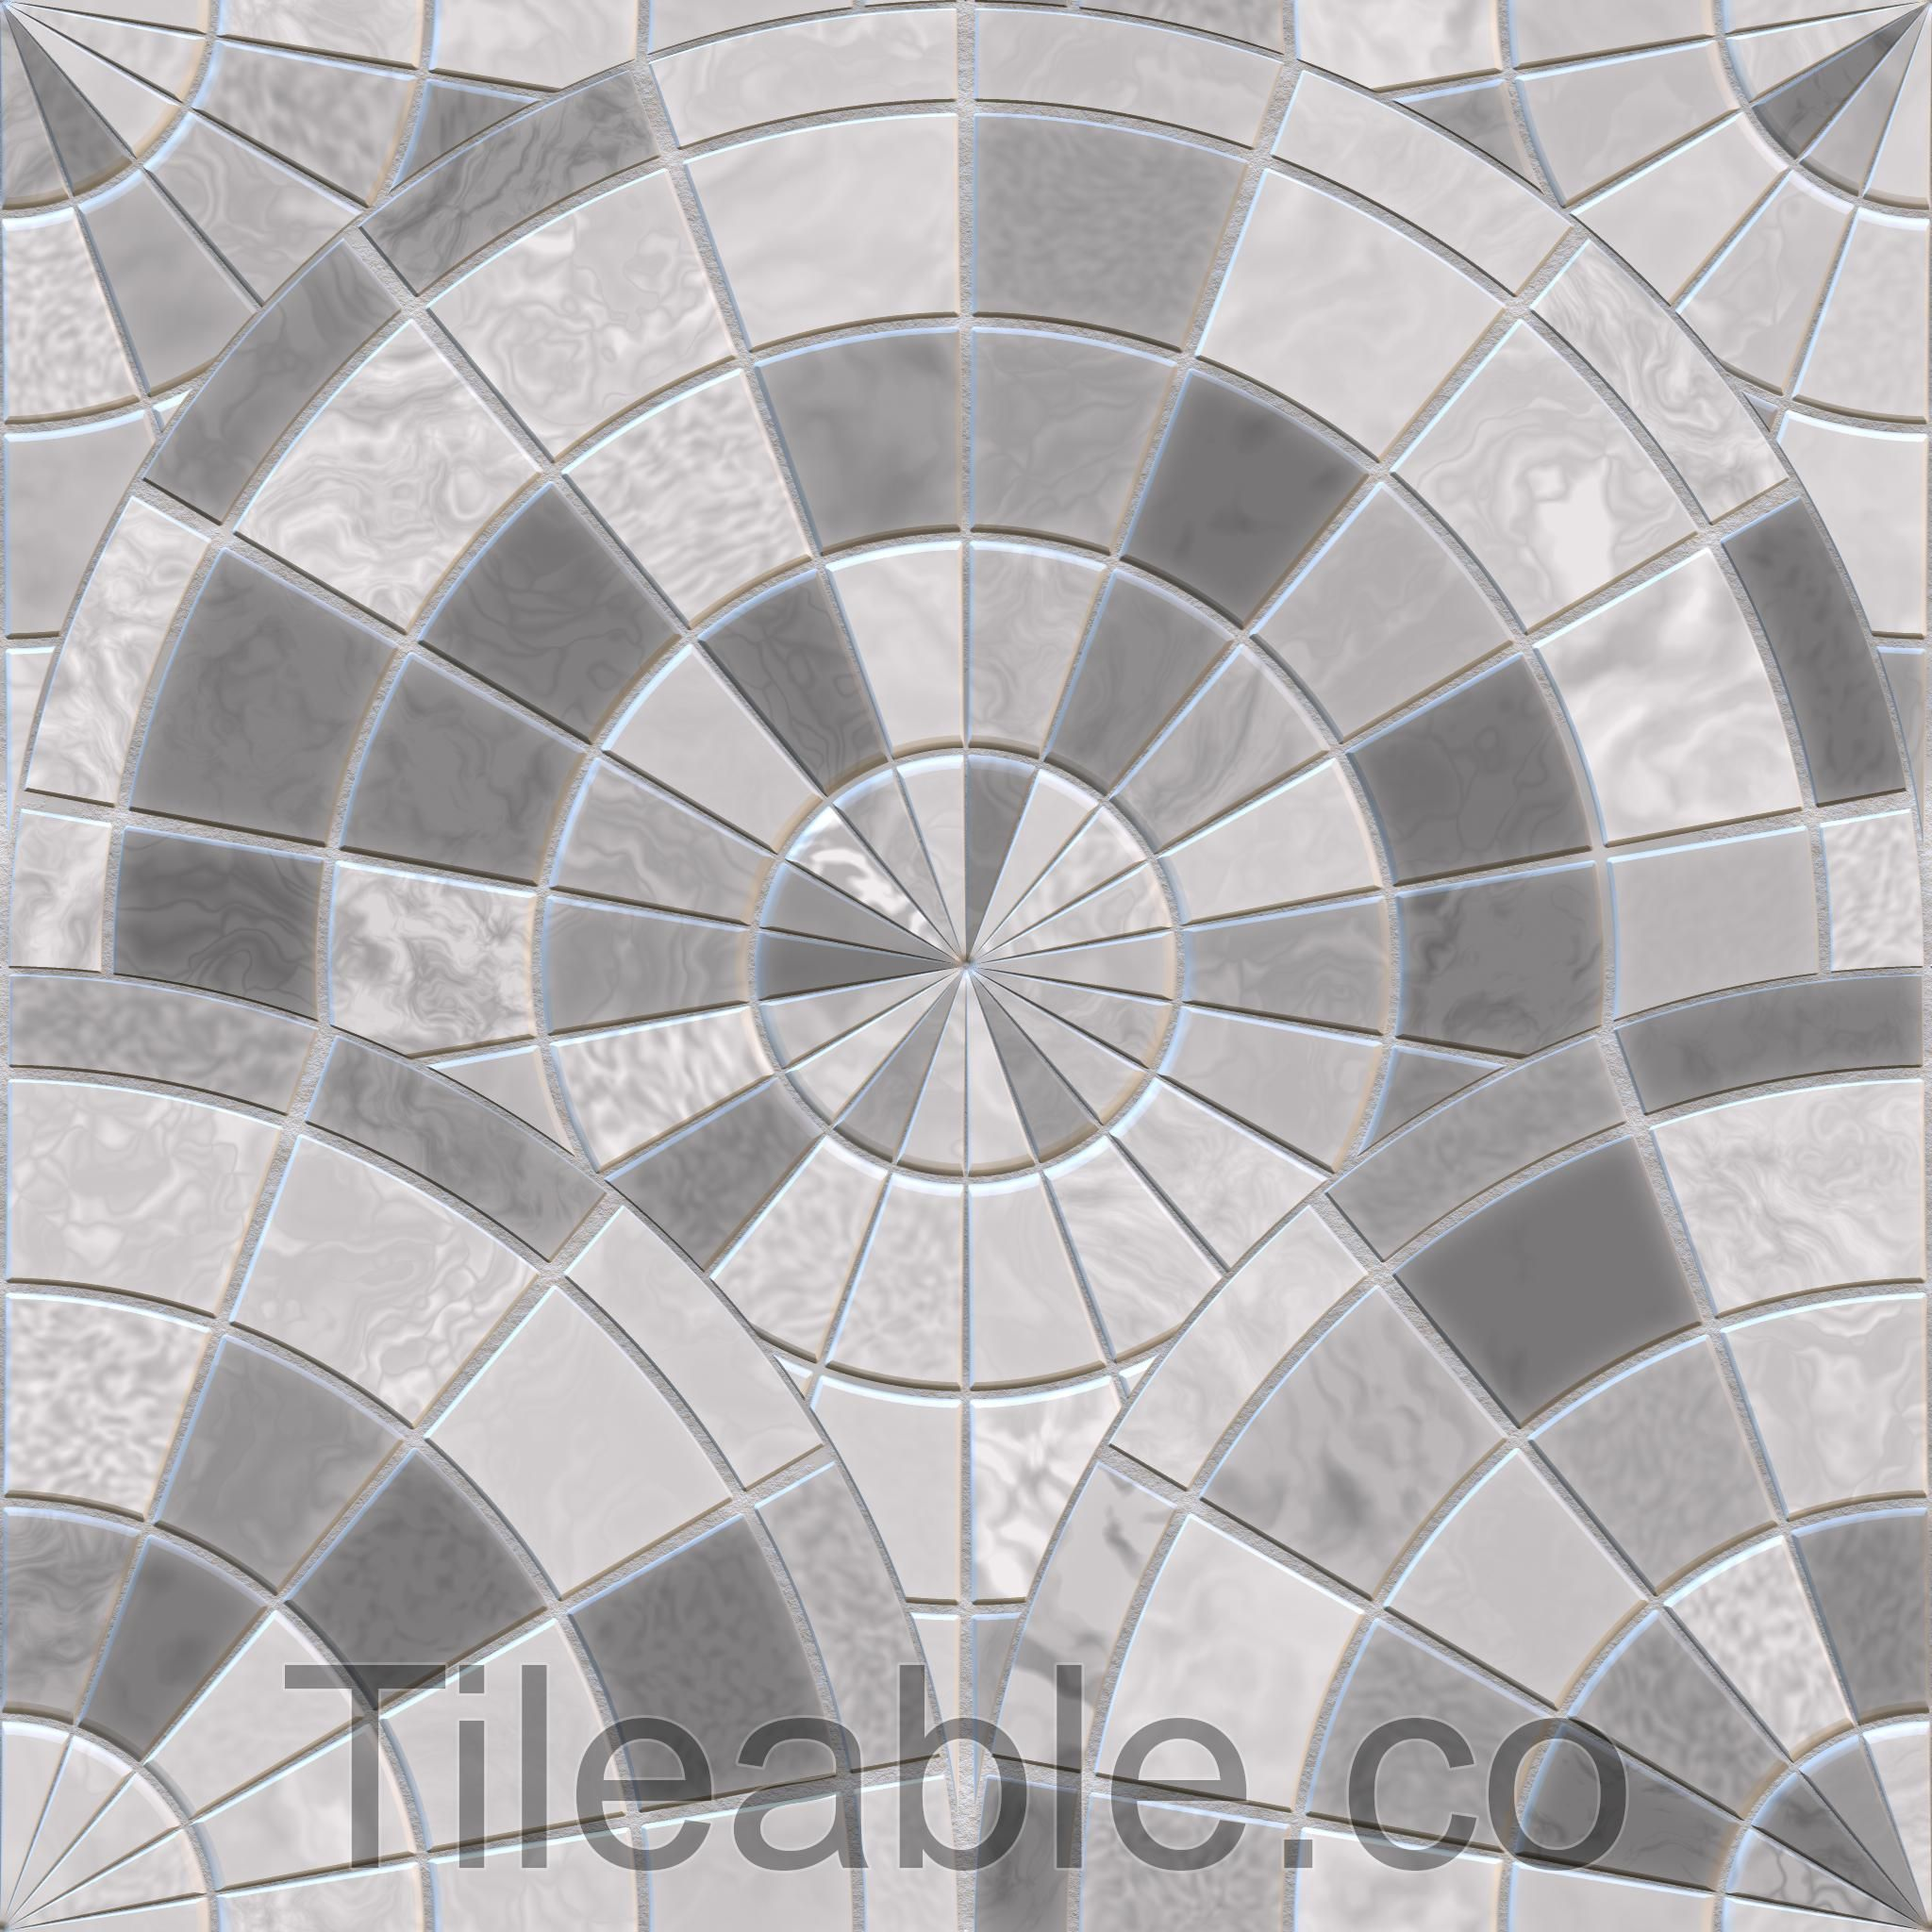 Circular Floor Tiles Design 7 Awsome Texture With All 3d